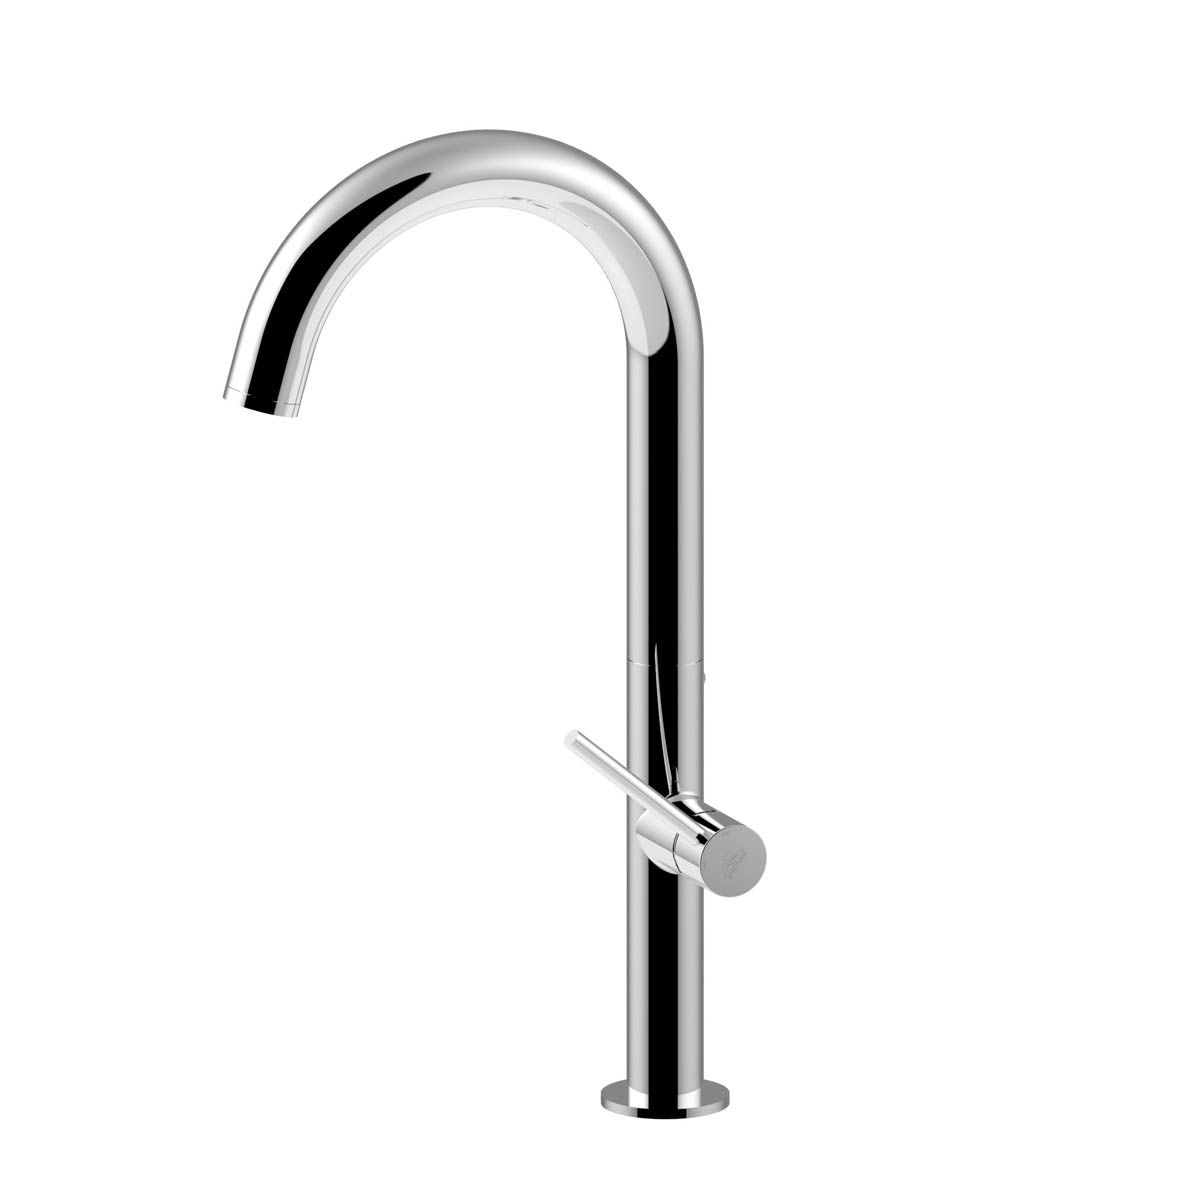 ws bath collections chef ch 180 one hole kitchen faucet with swivel spout